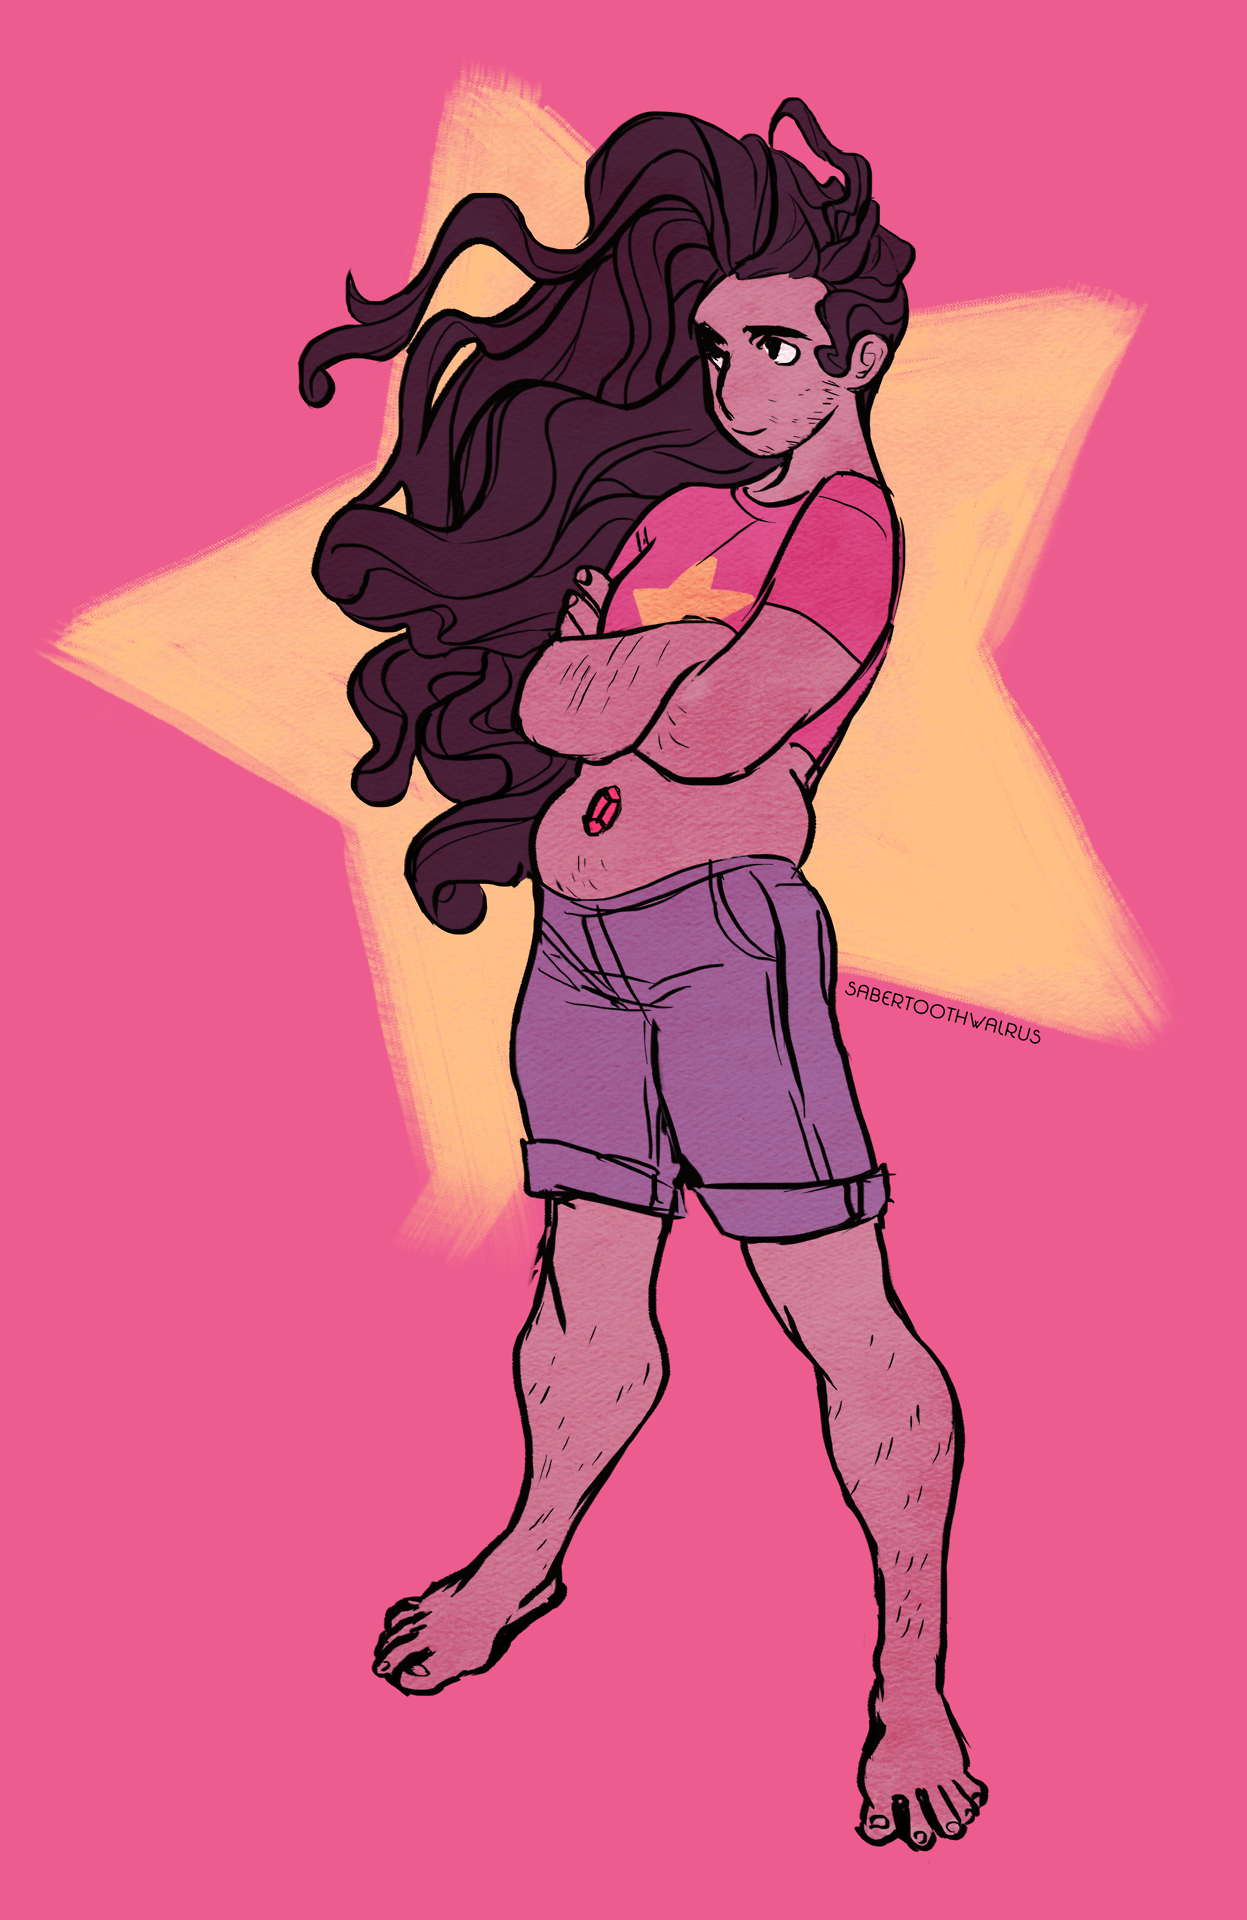 I was so excited that the stubbly Stevonnie I drew over a year ago became canon that I made a new Stevonnie print